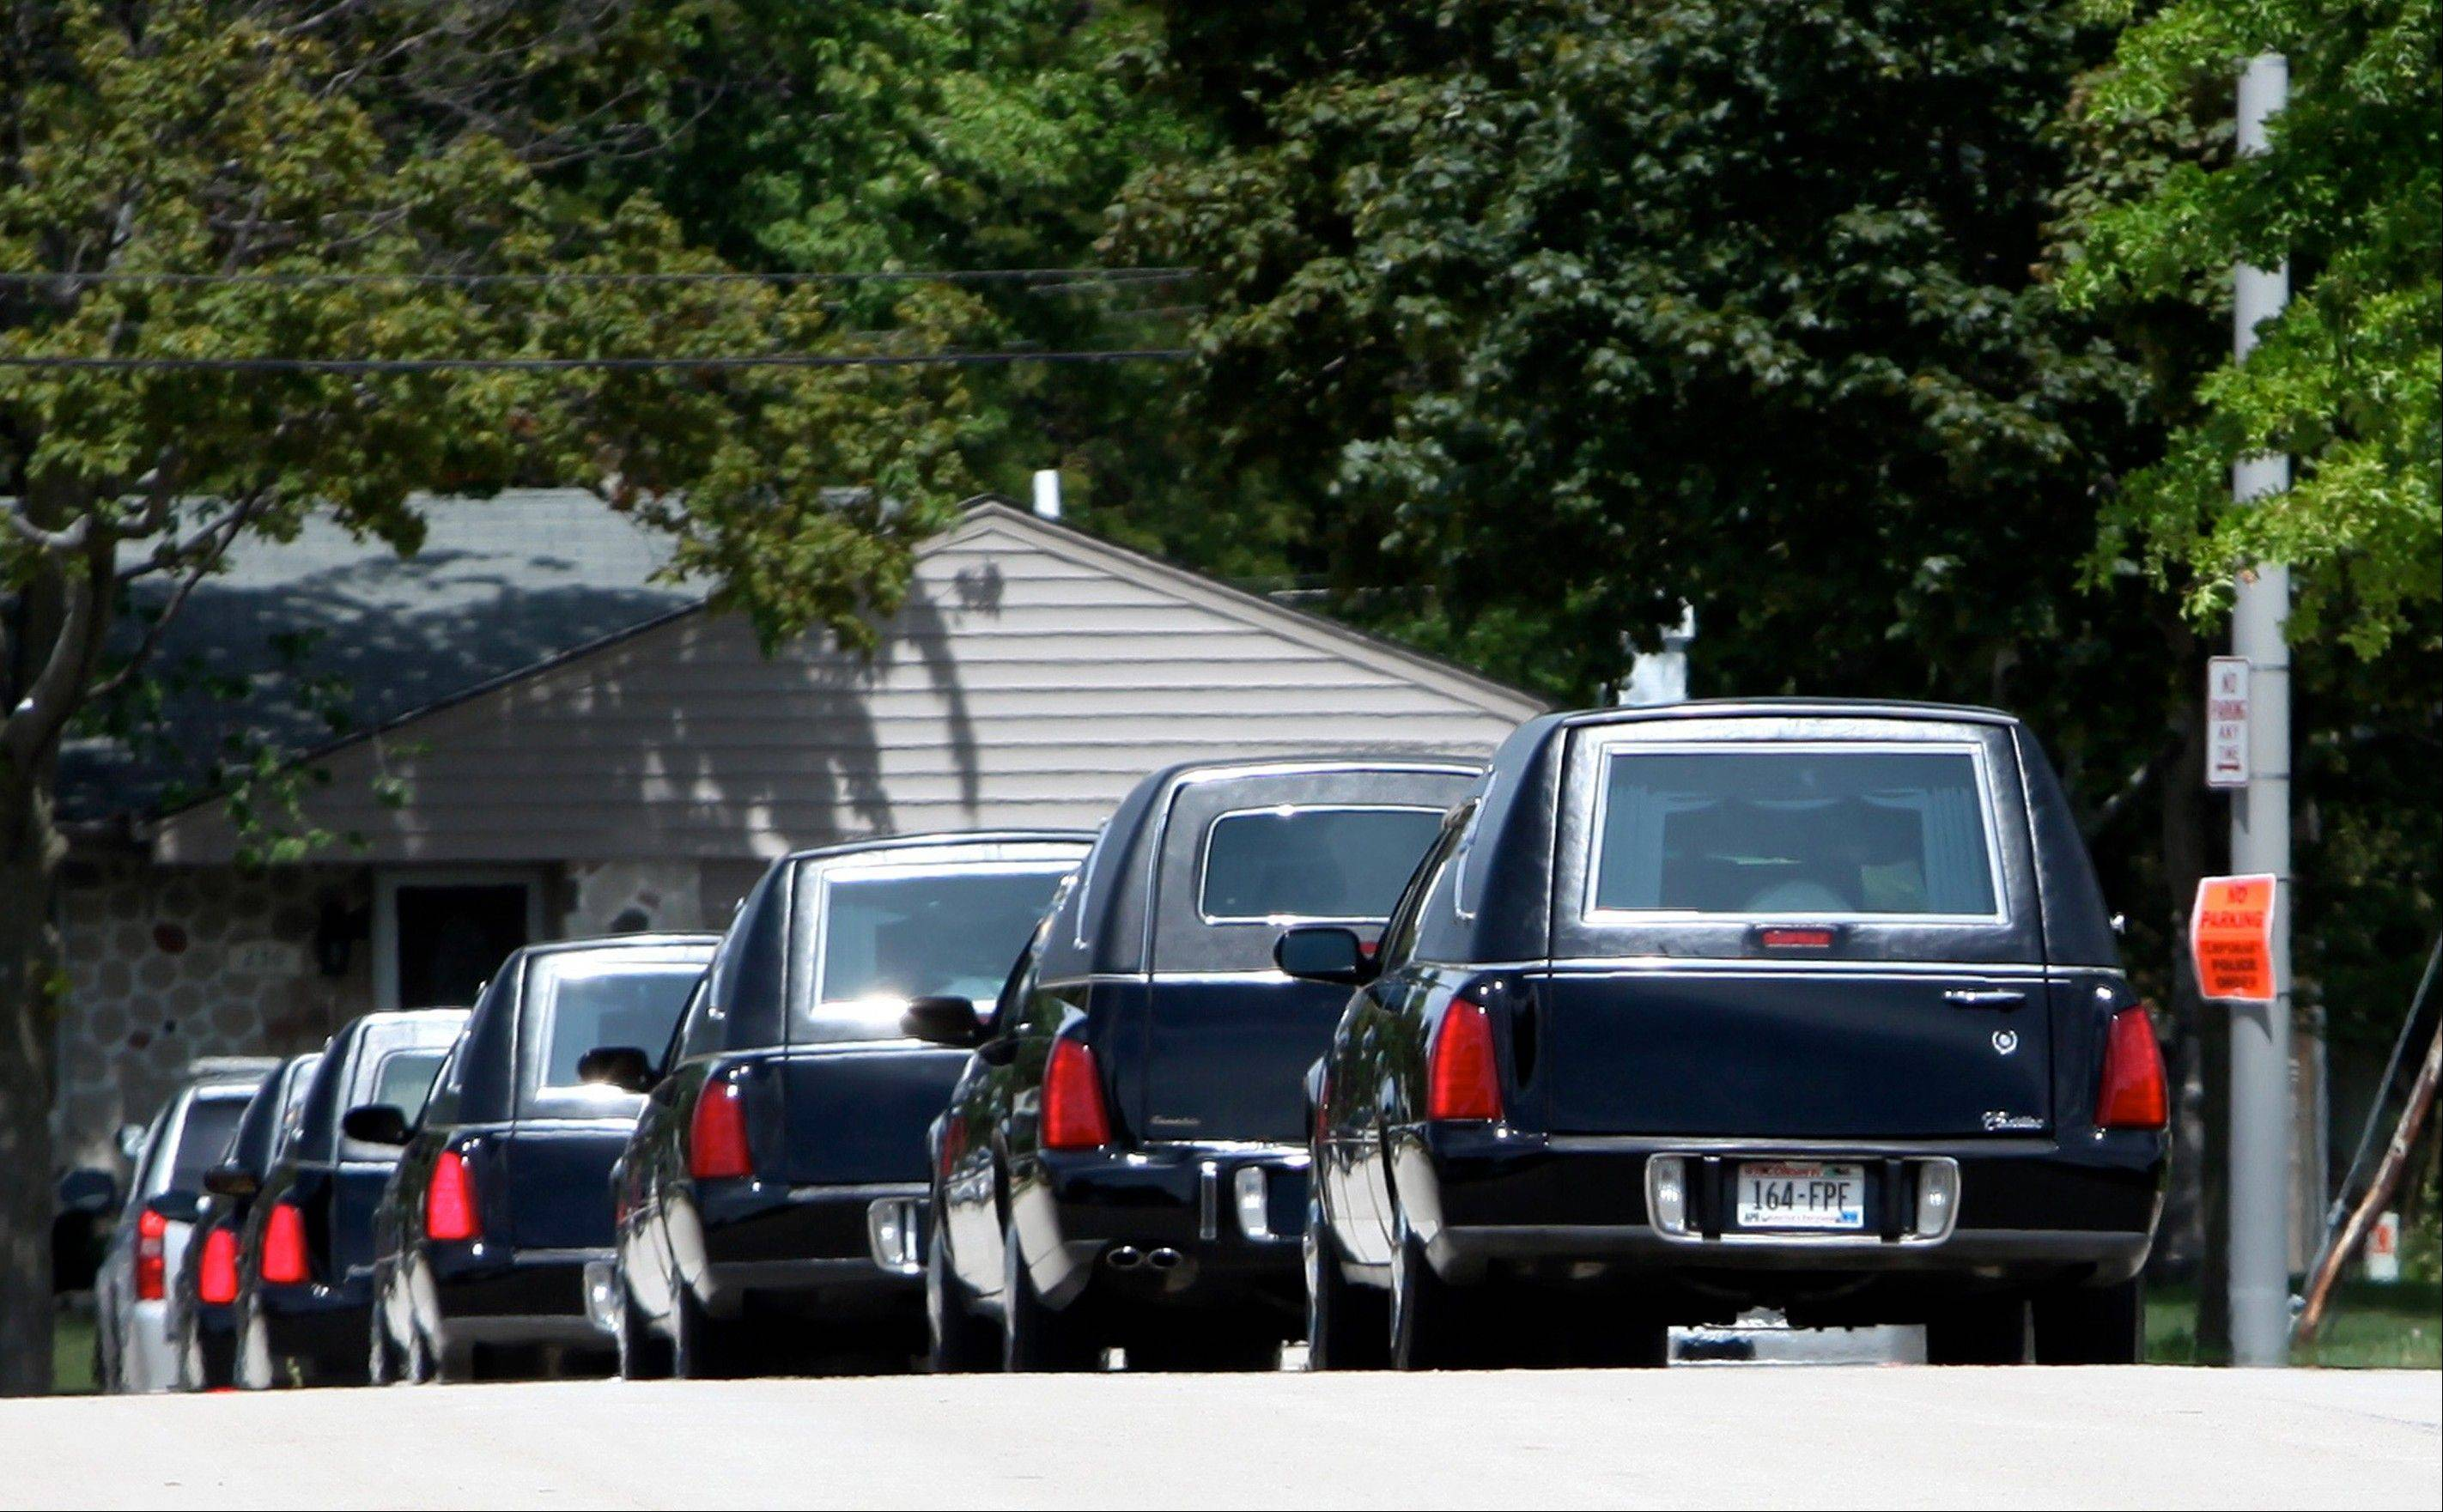 Associated Press Six hearses carrying the deceased leave the Oak Creek High School after the funeral and memorial service Friday for the six victims of the Sikh Temple of Wisconsin mass shooting in Oak Creek, Wis.